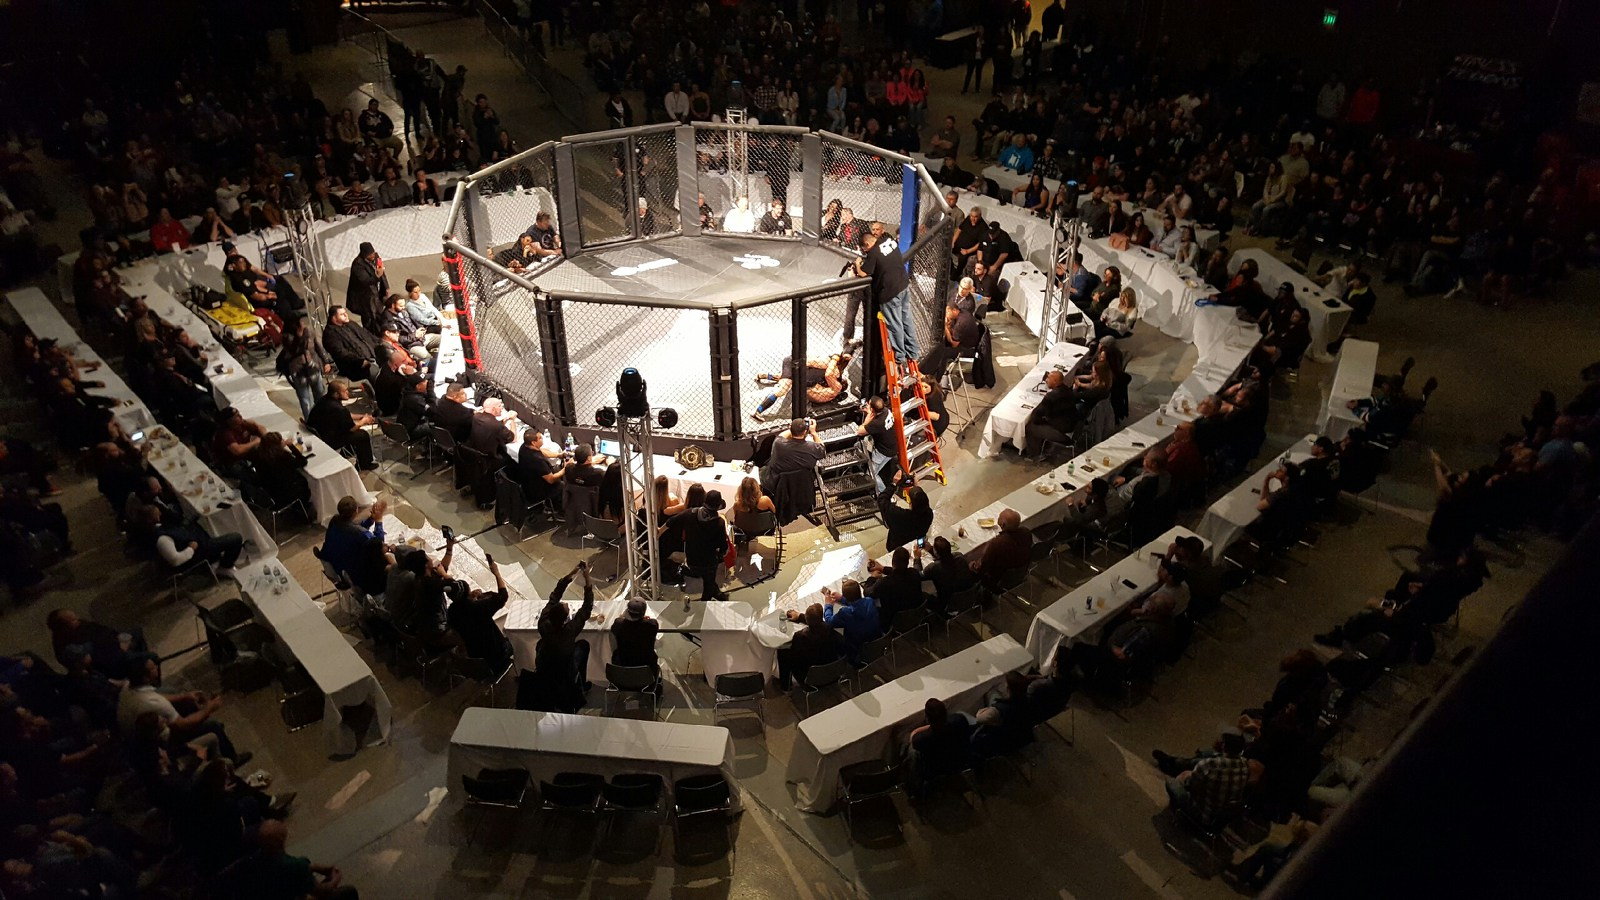 Cagefighting